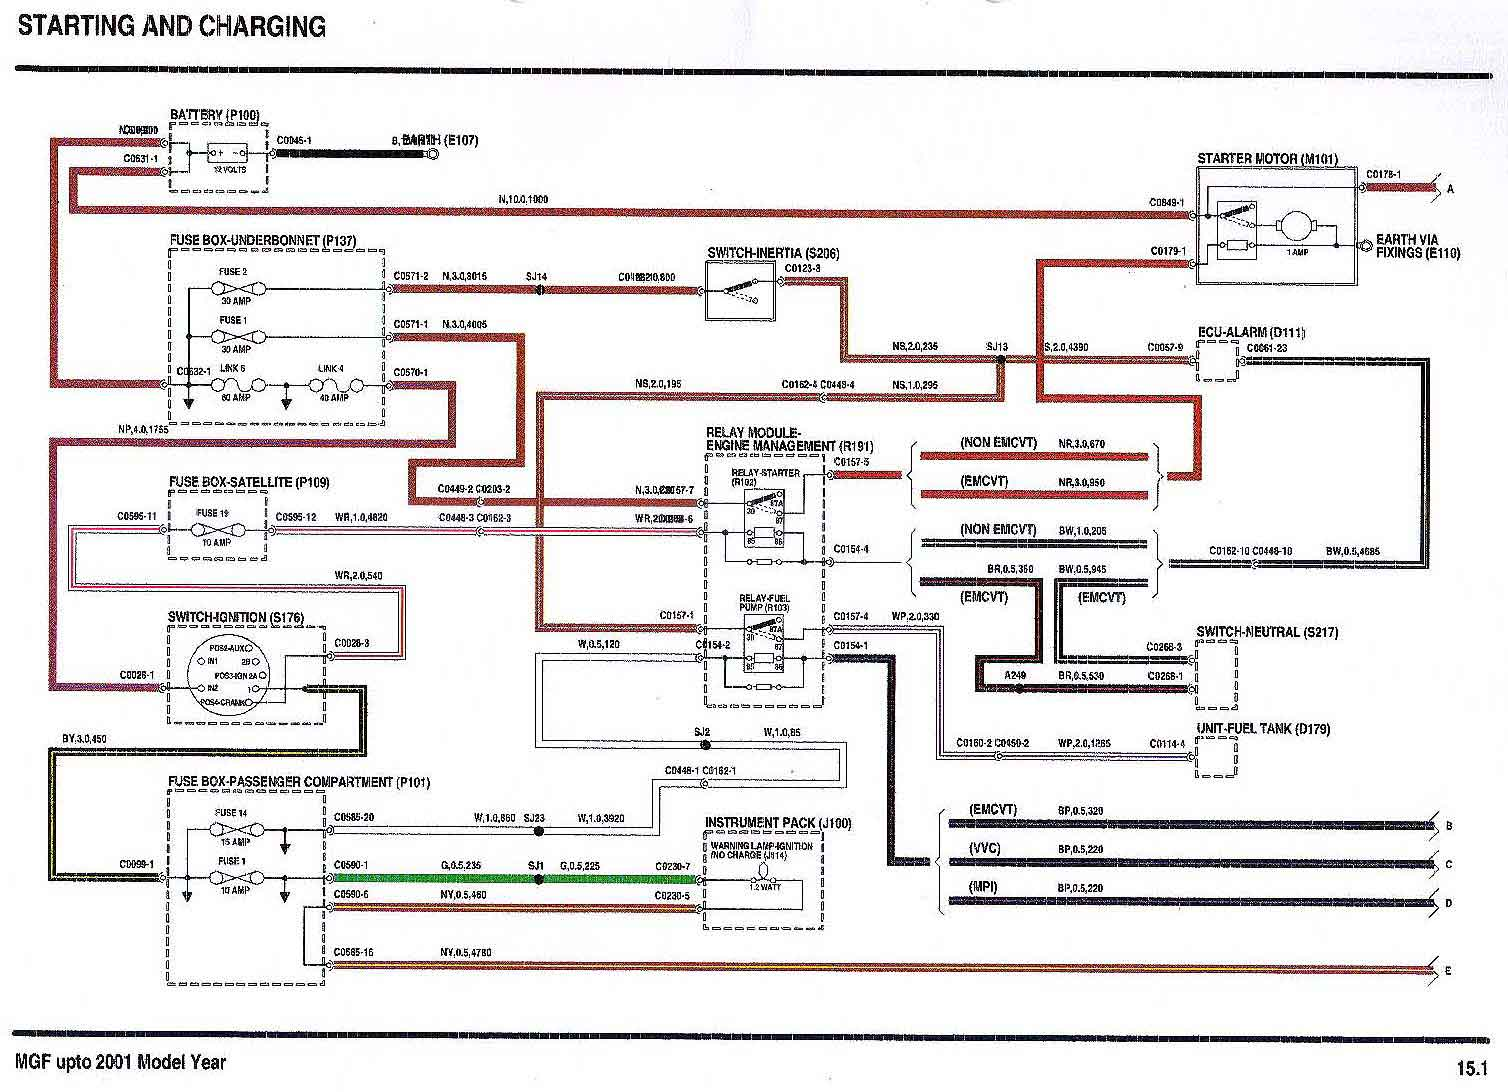 Rover 25 Wiring Diagram Pdf Not Lossing Trailer Uk Simple Diagrams Rh 38 Studio011 De Auto Charger